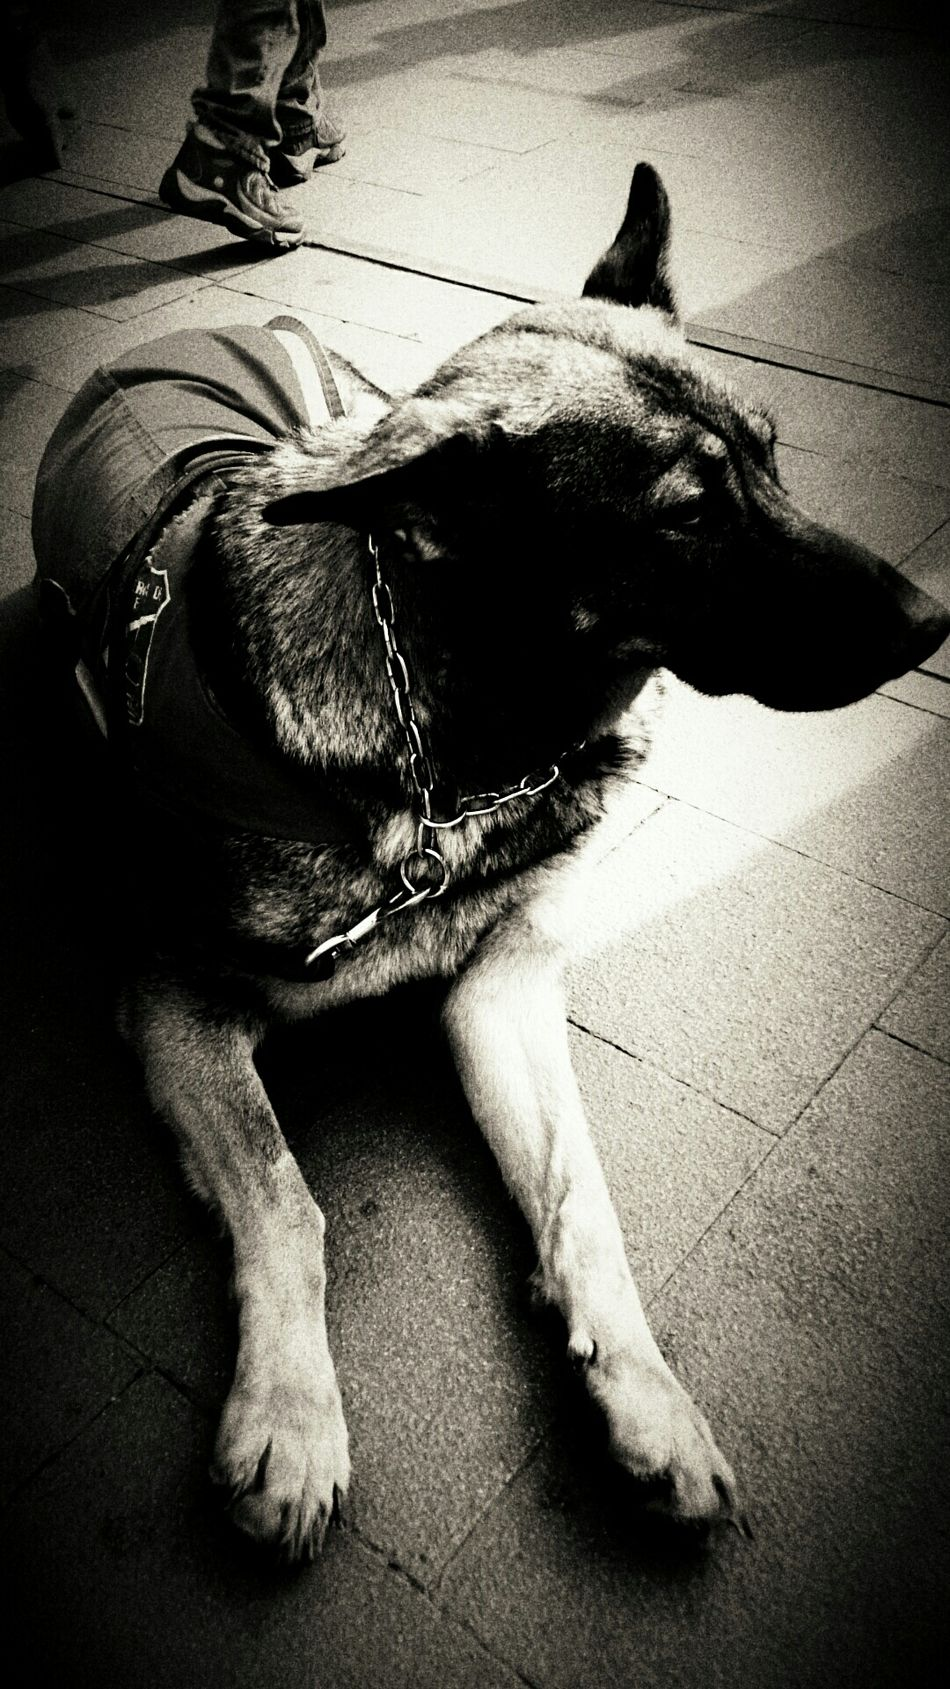 Galaxy Camera EyeEm The Best Shots Streetphotography Black & White My Unique Style Moment Lens FromChile The Police Dog